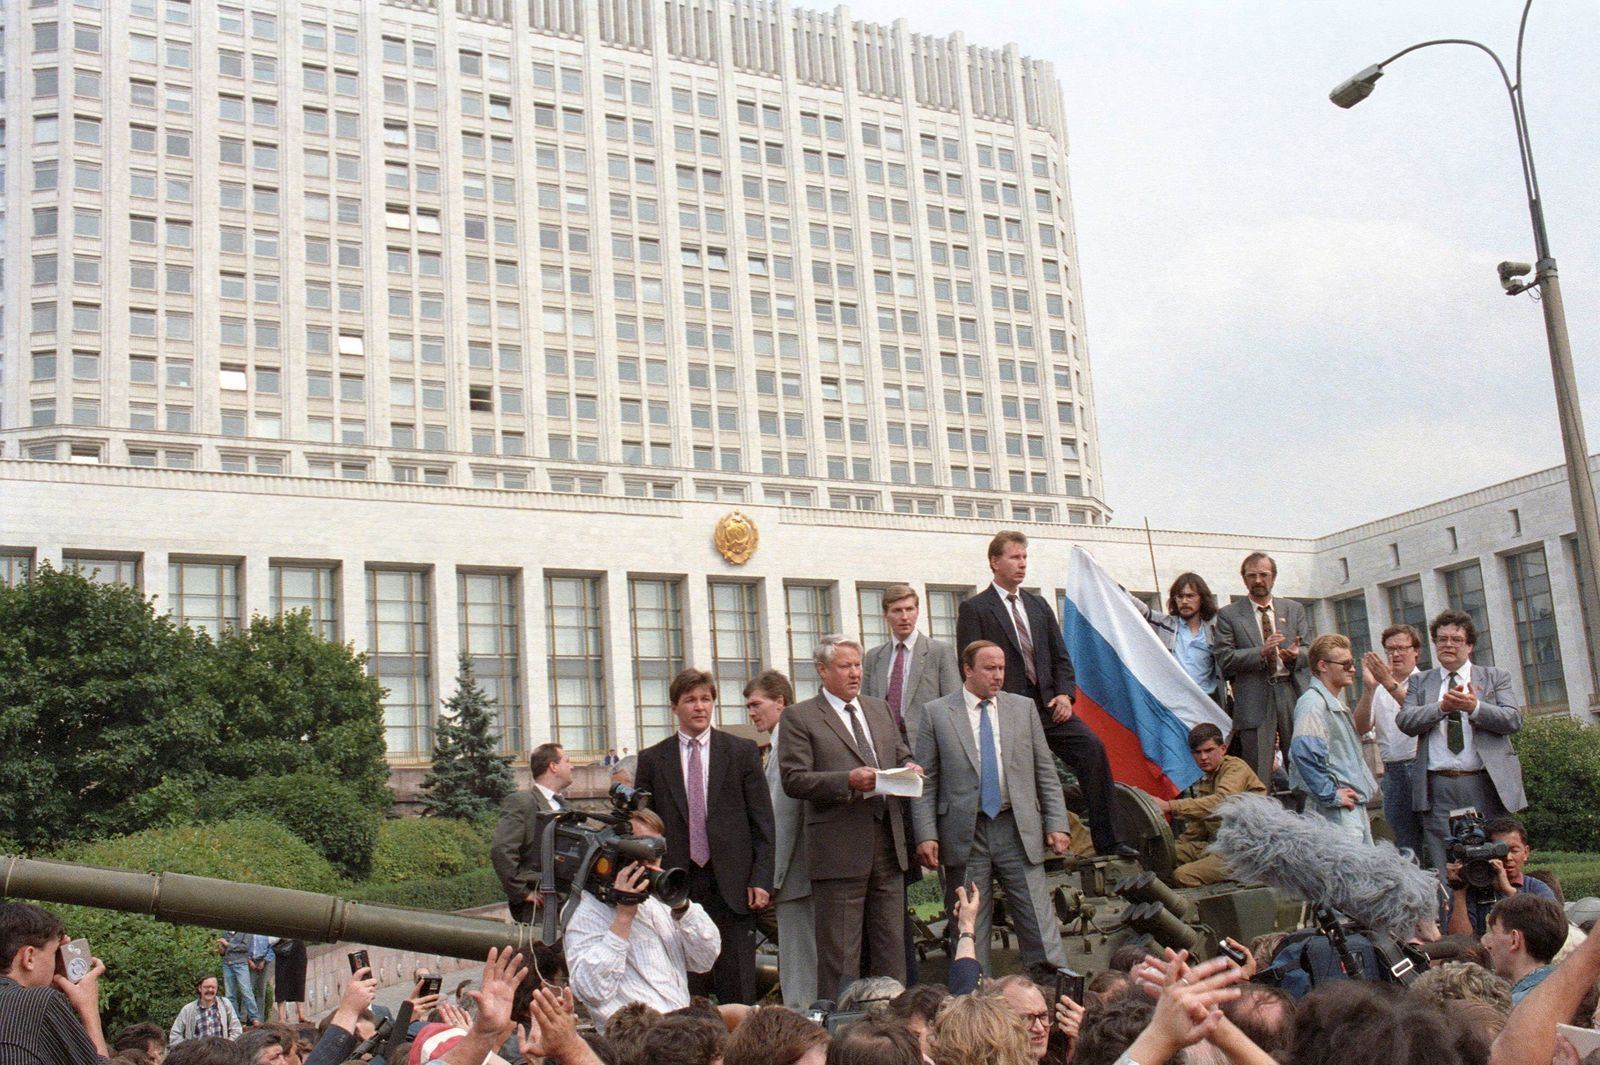 Moscow. The 19th of August. Near the Council of Ministers of the Russian Soviet Federative Socialist Republic. As viewe